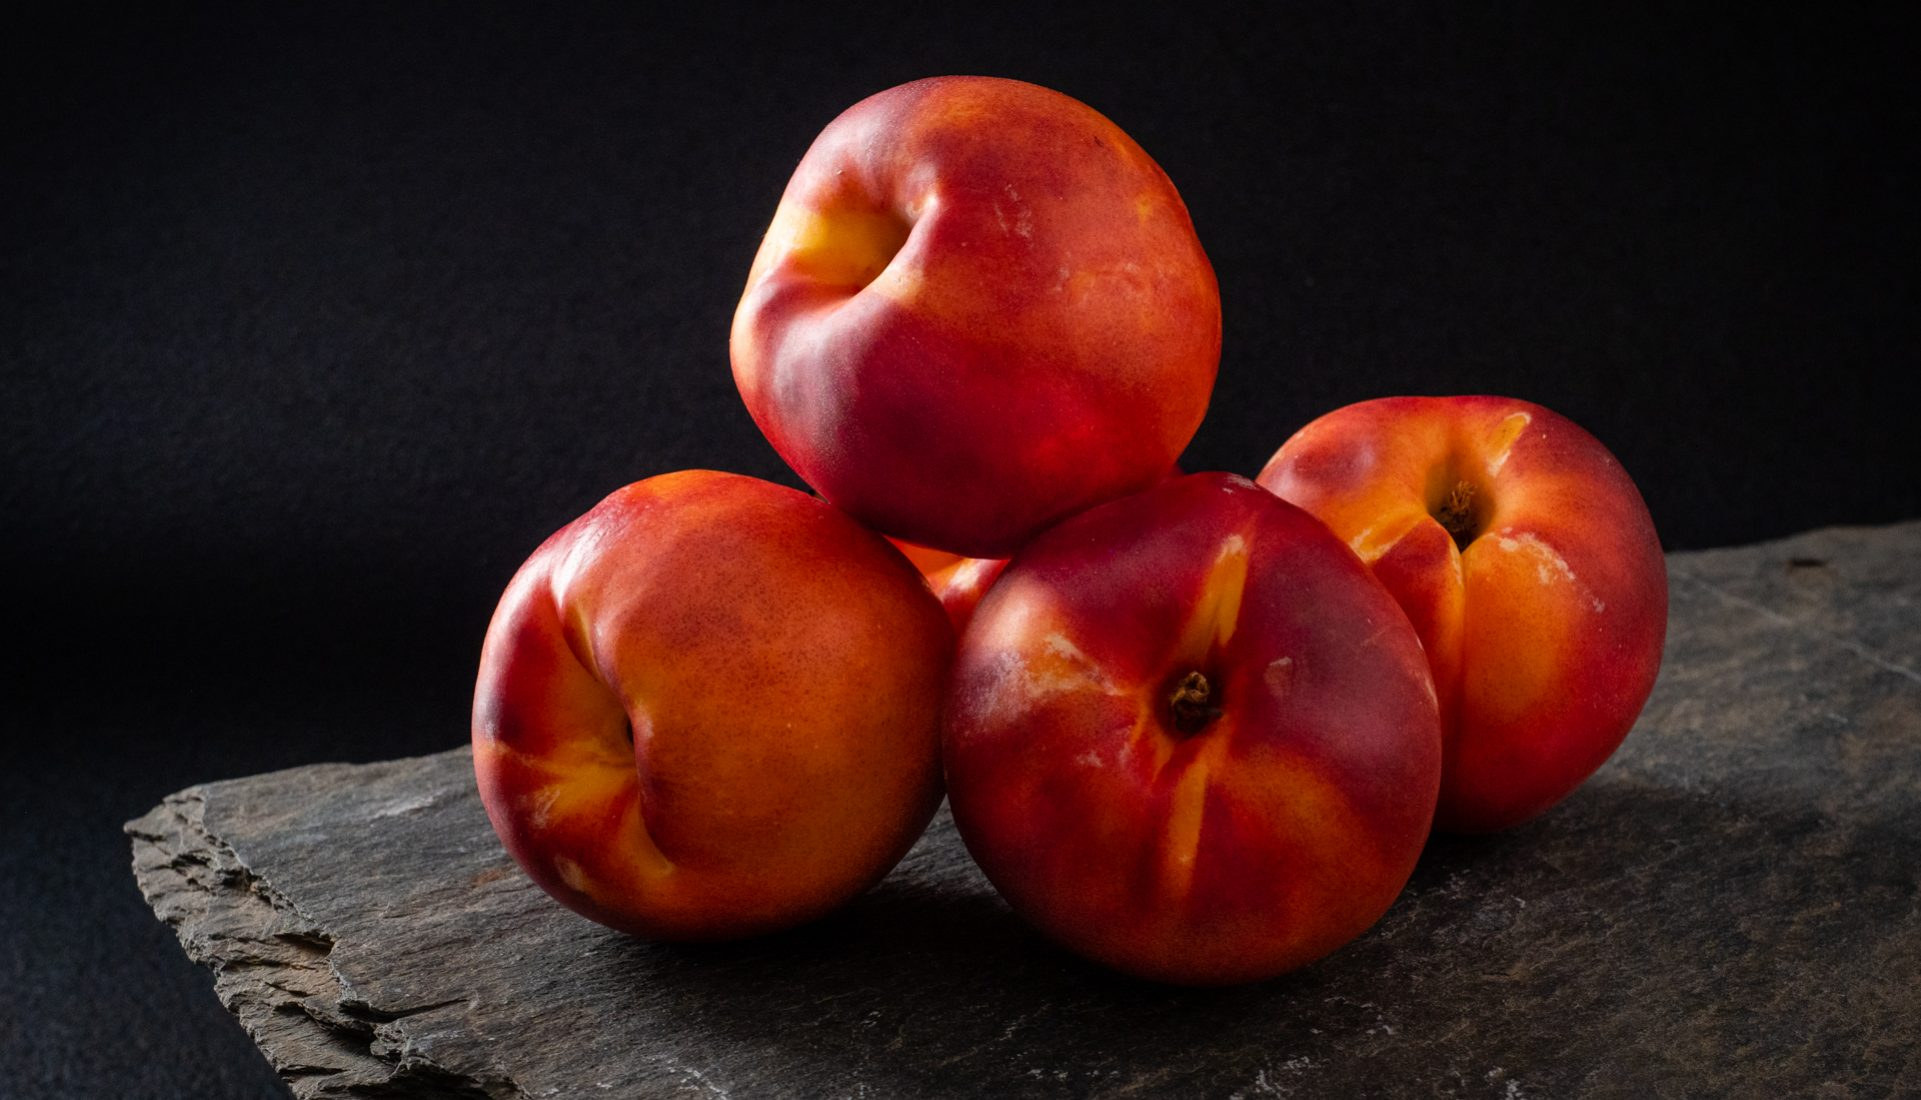 Nectarines | Still Life Photography